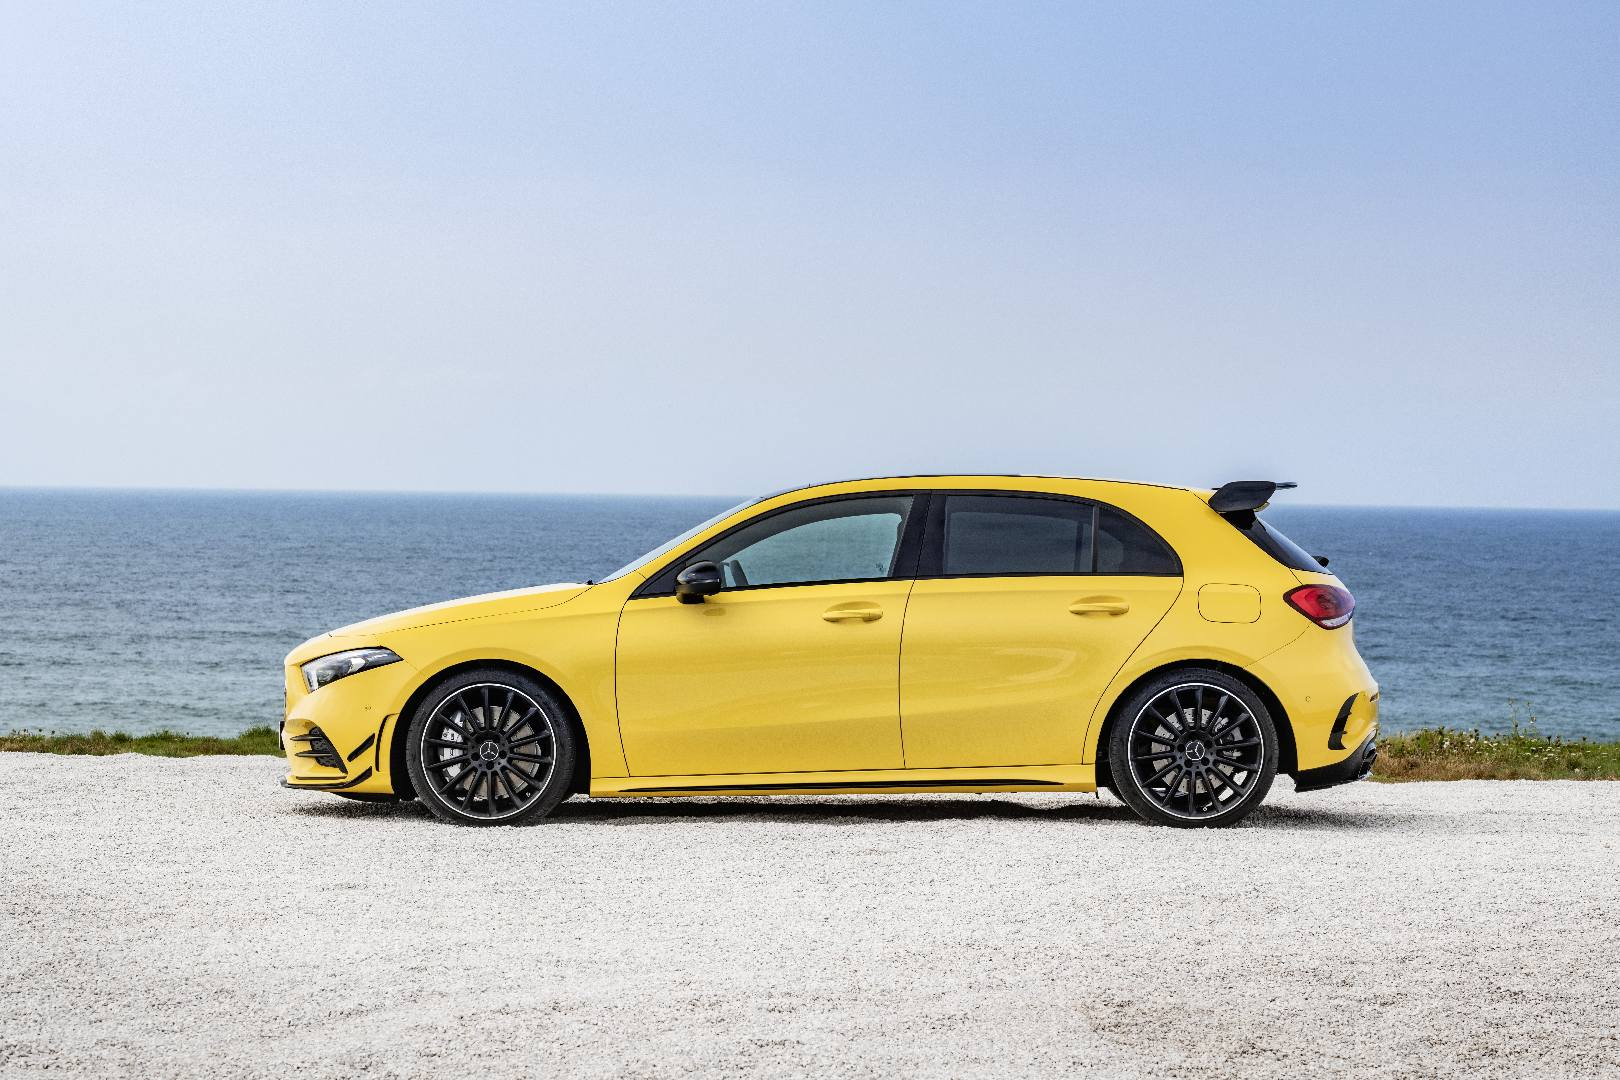 Mercedes-AMG A35 4Matic Leaked, Looks Fun To Drive